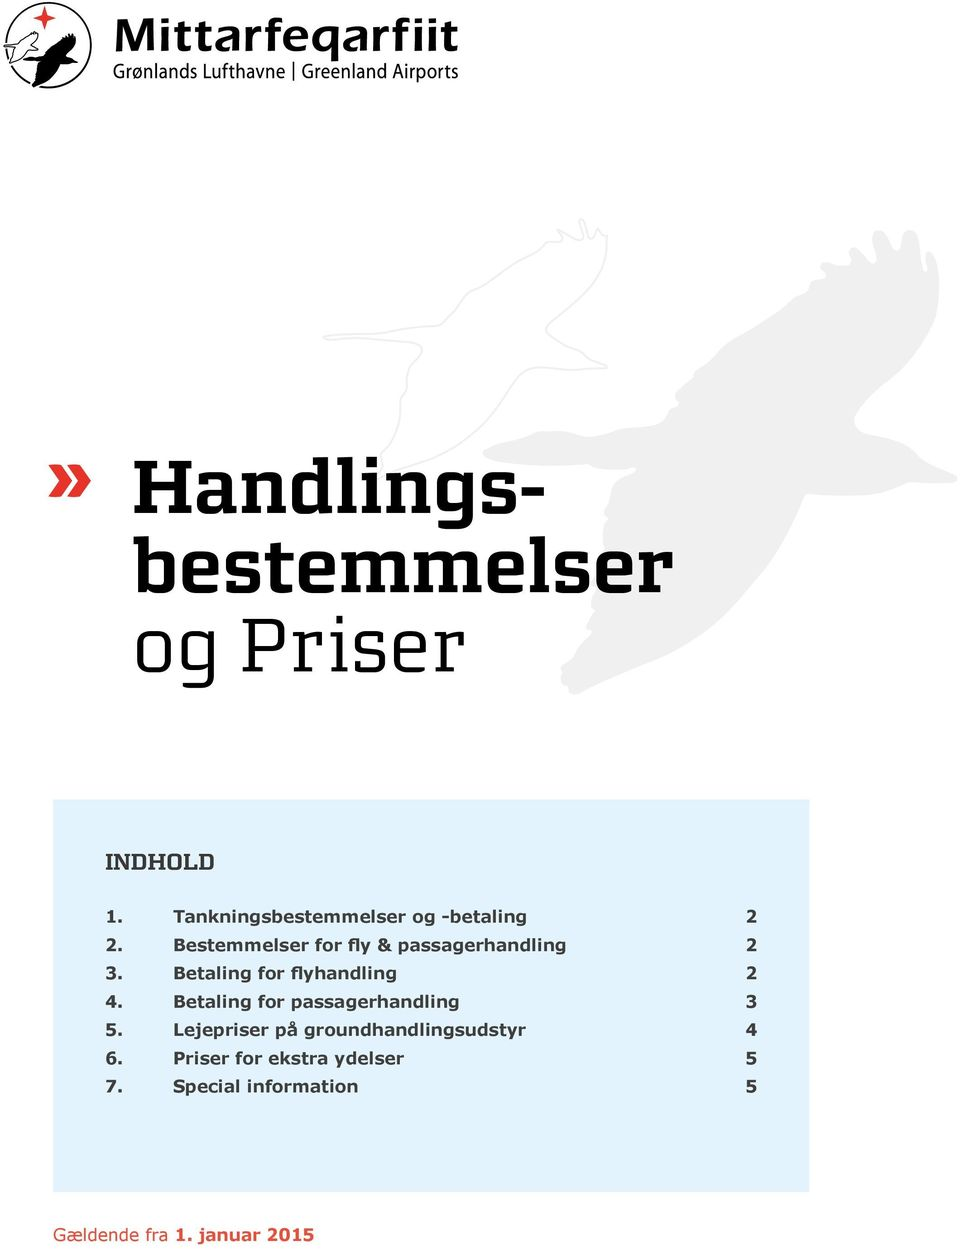 Bestemmelser for fly & passagerhandling 2 3. Betaling for flyhandling 2 4.